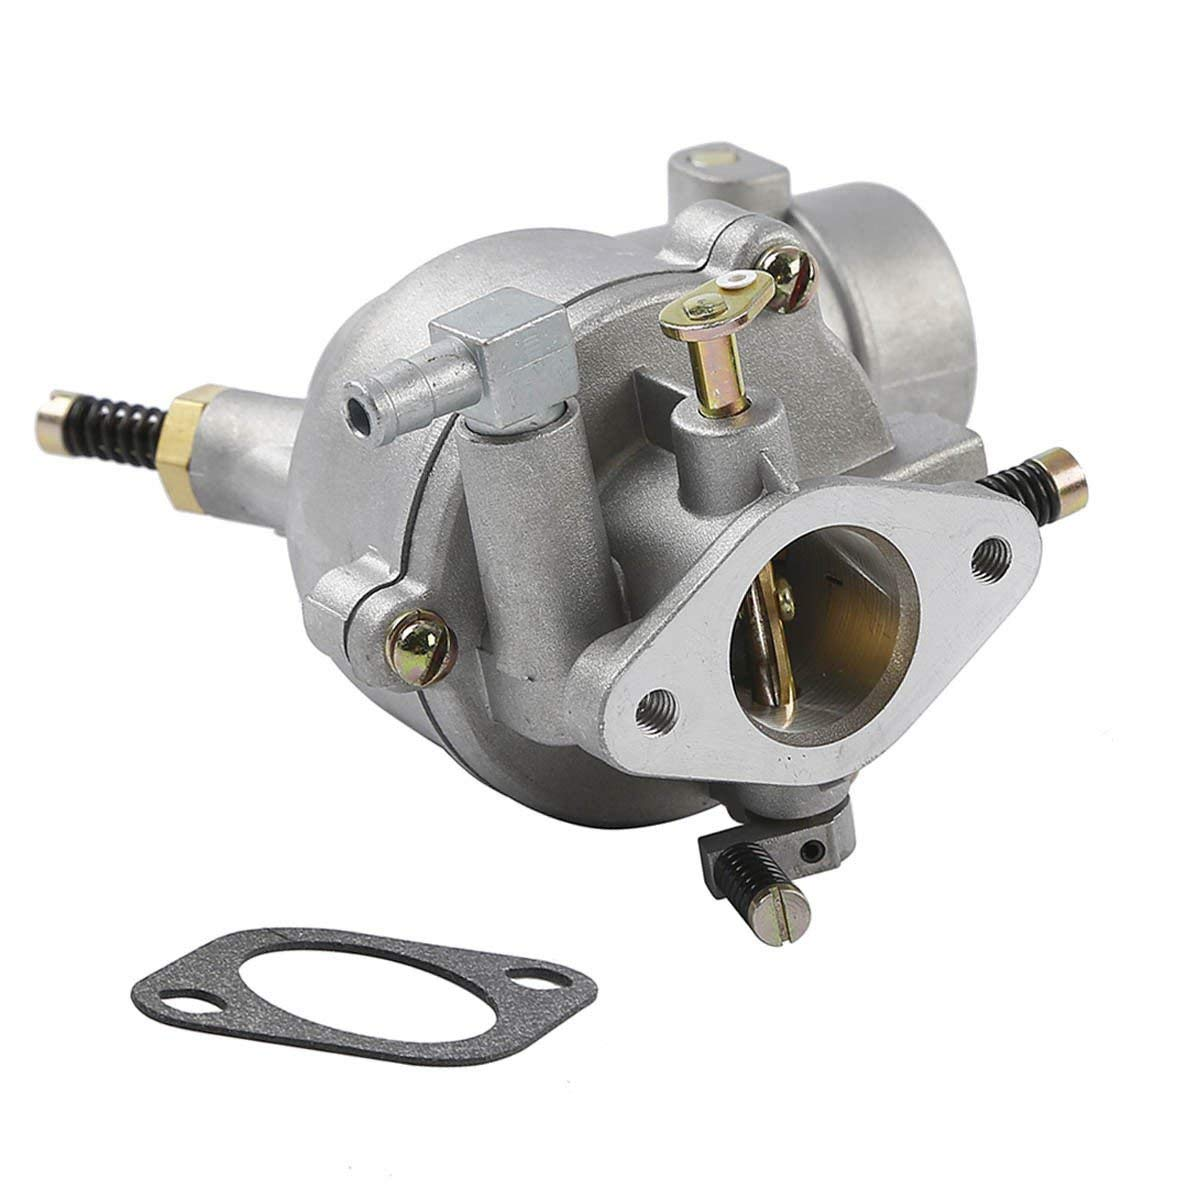 XMT-MOTO New CARBURETOR CARB 390323, 394228 for Briggs & Stratton 7, 8, 9 HP Engine Motor